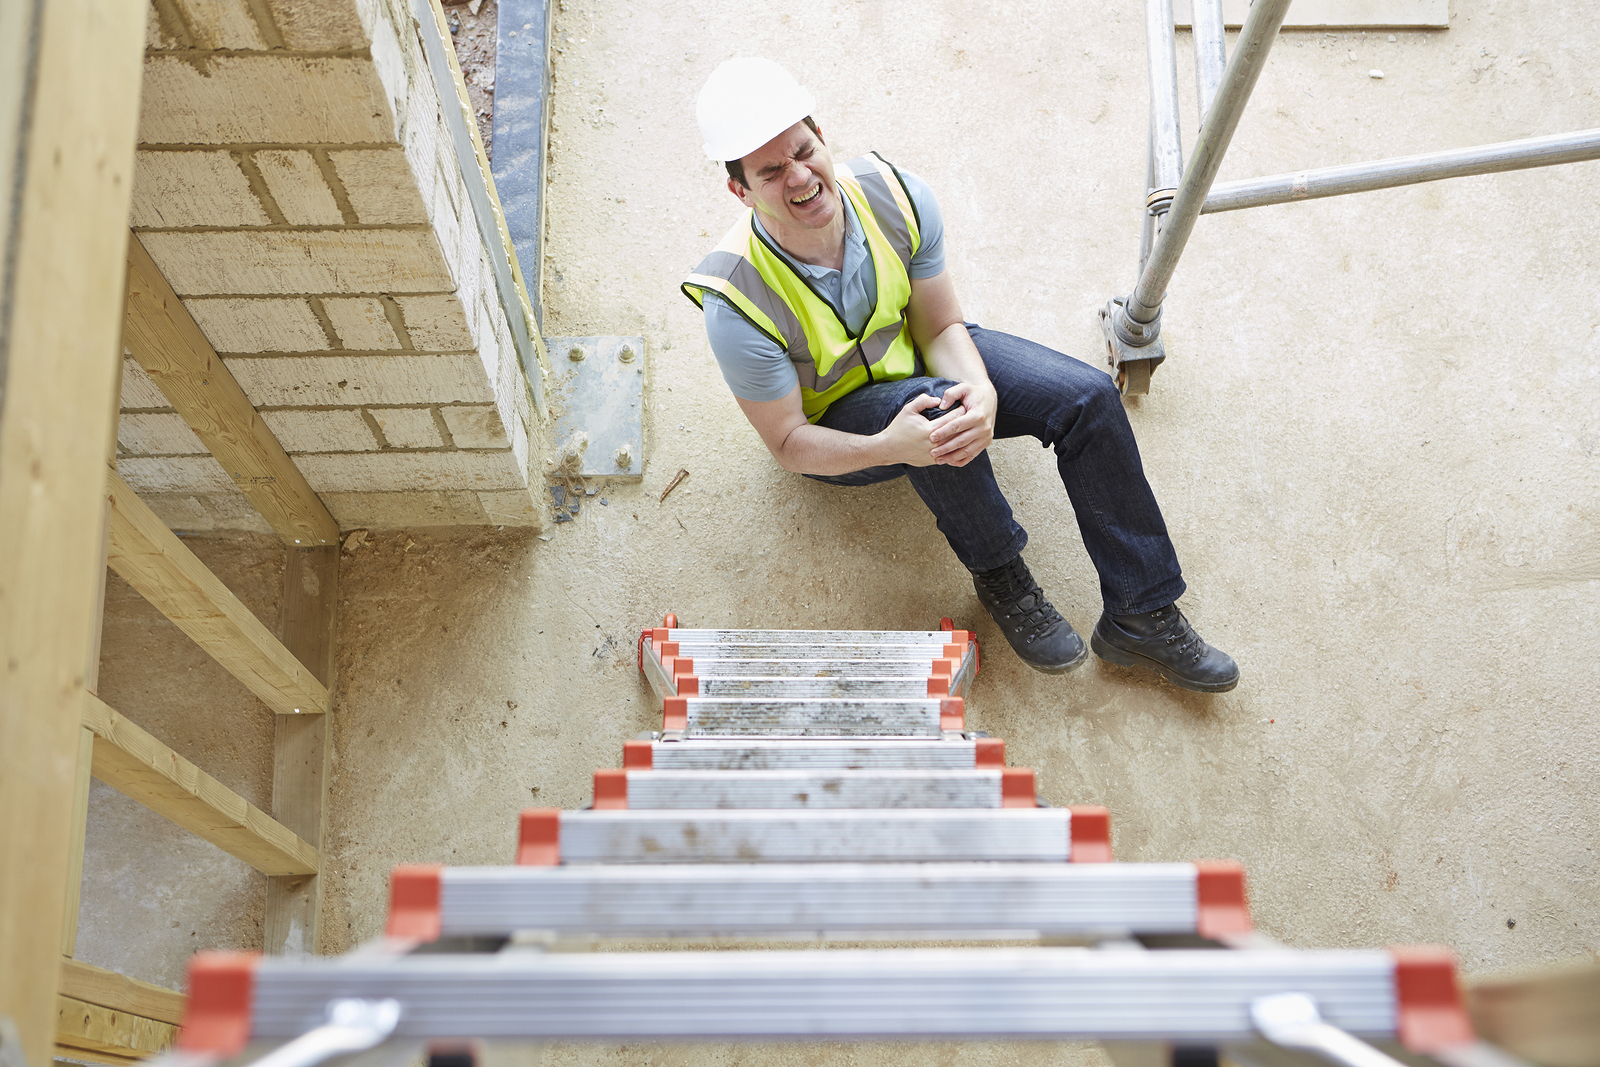 construction site accidents There have been significant reductions in the number and rate of injury over the last 20 years or more nevertheless, construction remains a high risk industry.